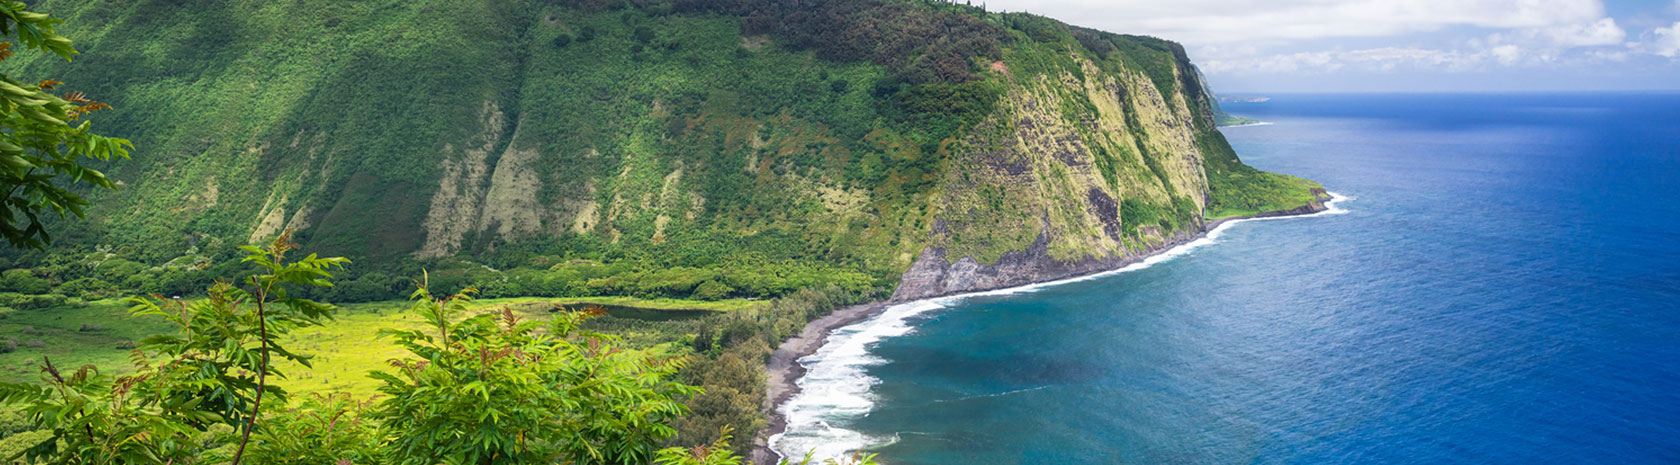 Lush greenery goes all the way to the coast of a deep blue ocean on the right, with a large cliff rounding out the coastline.